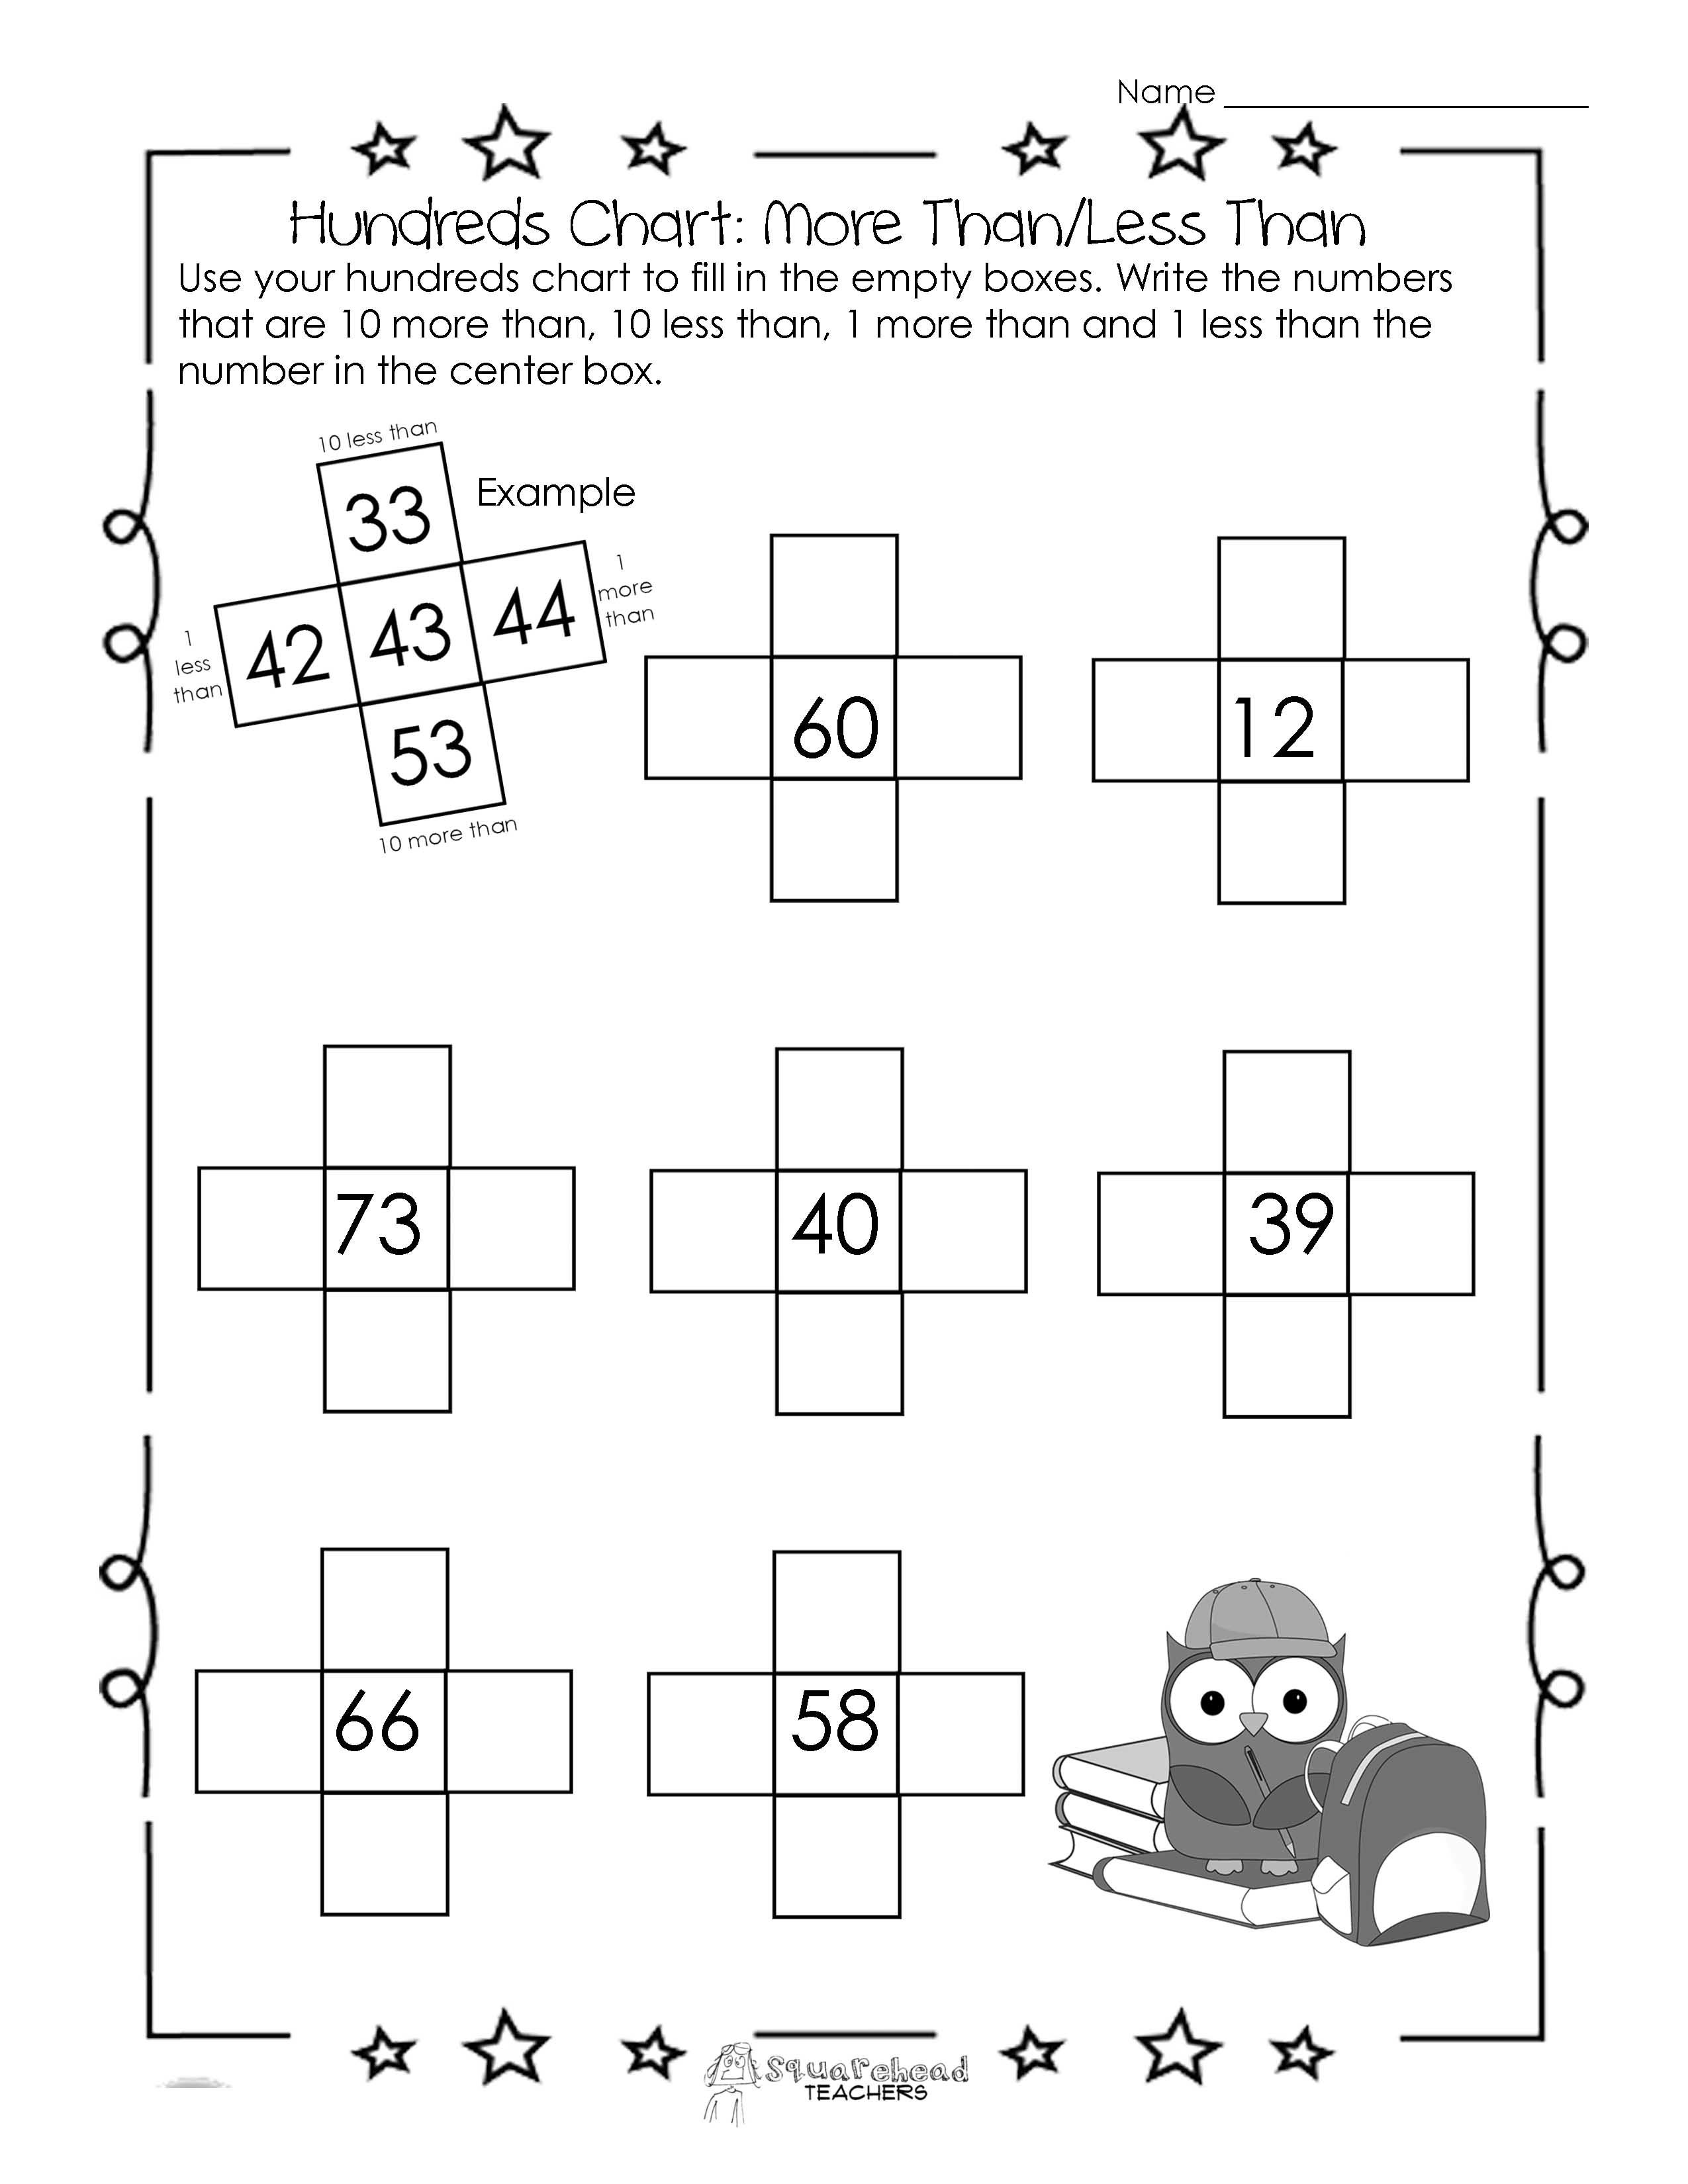 Uncategorized Math Less Than Greater Than Worksheets comparing fish less than and greater discover more ideas find this pin on free math teacher stuff squarehead teachers hundreds chart worksheet than